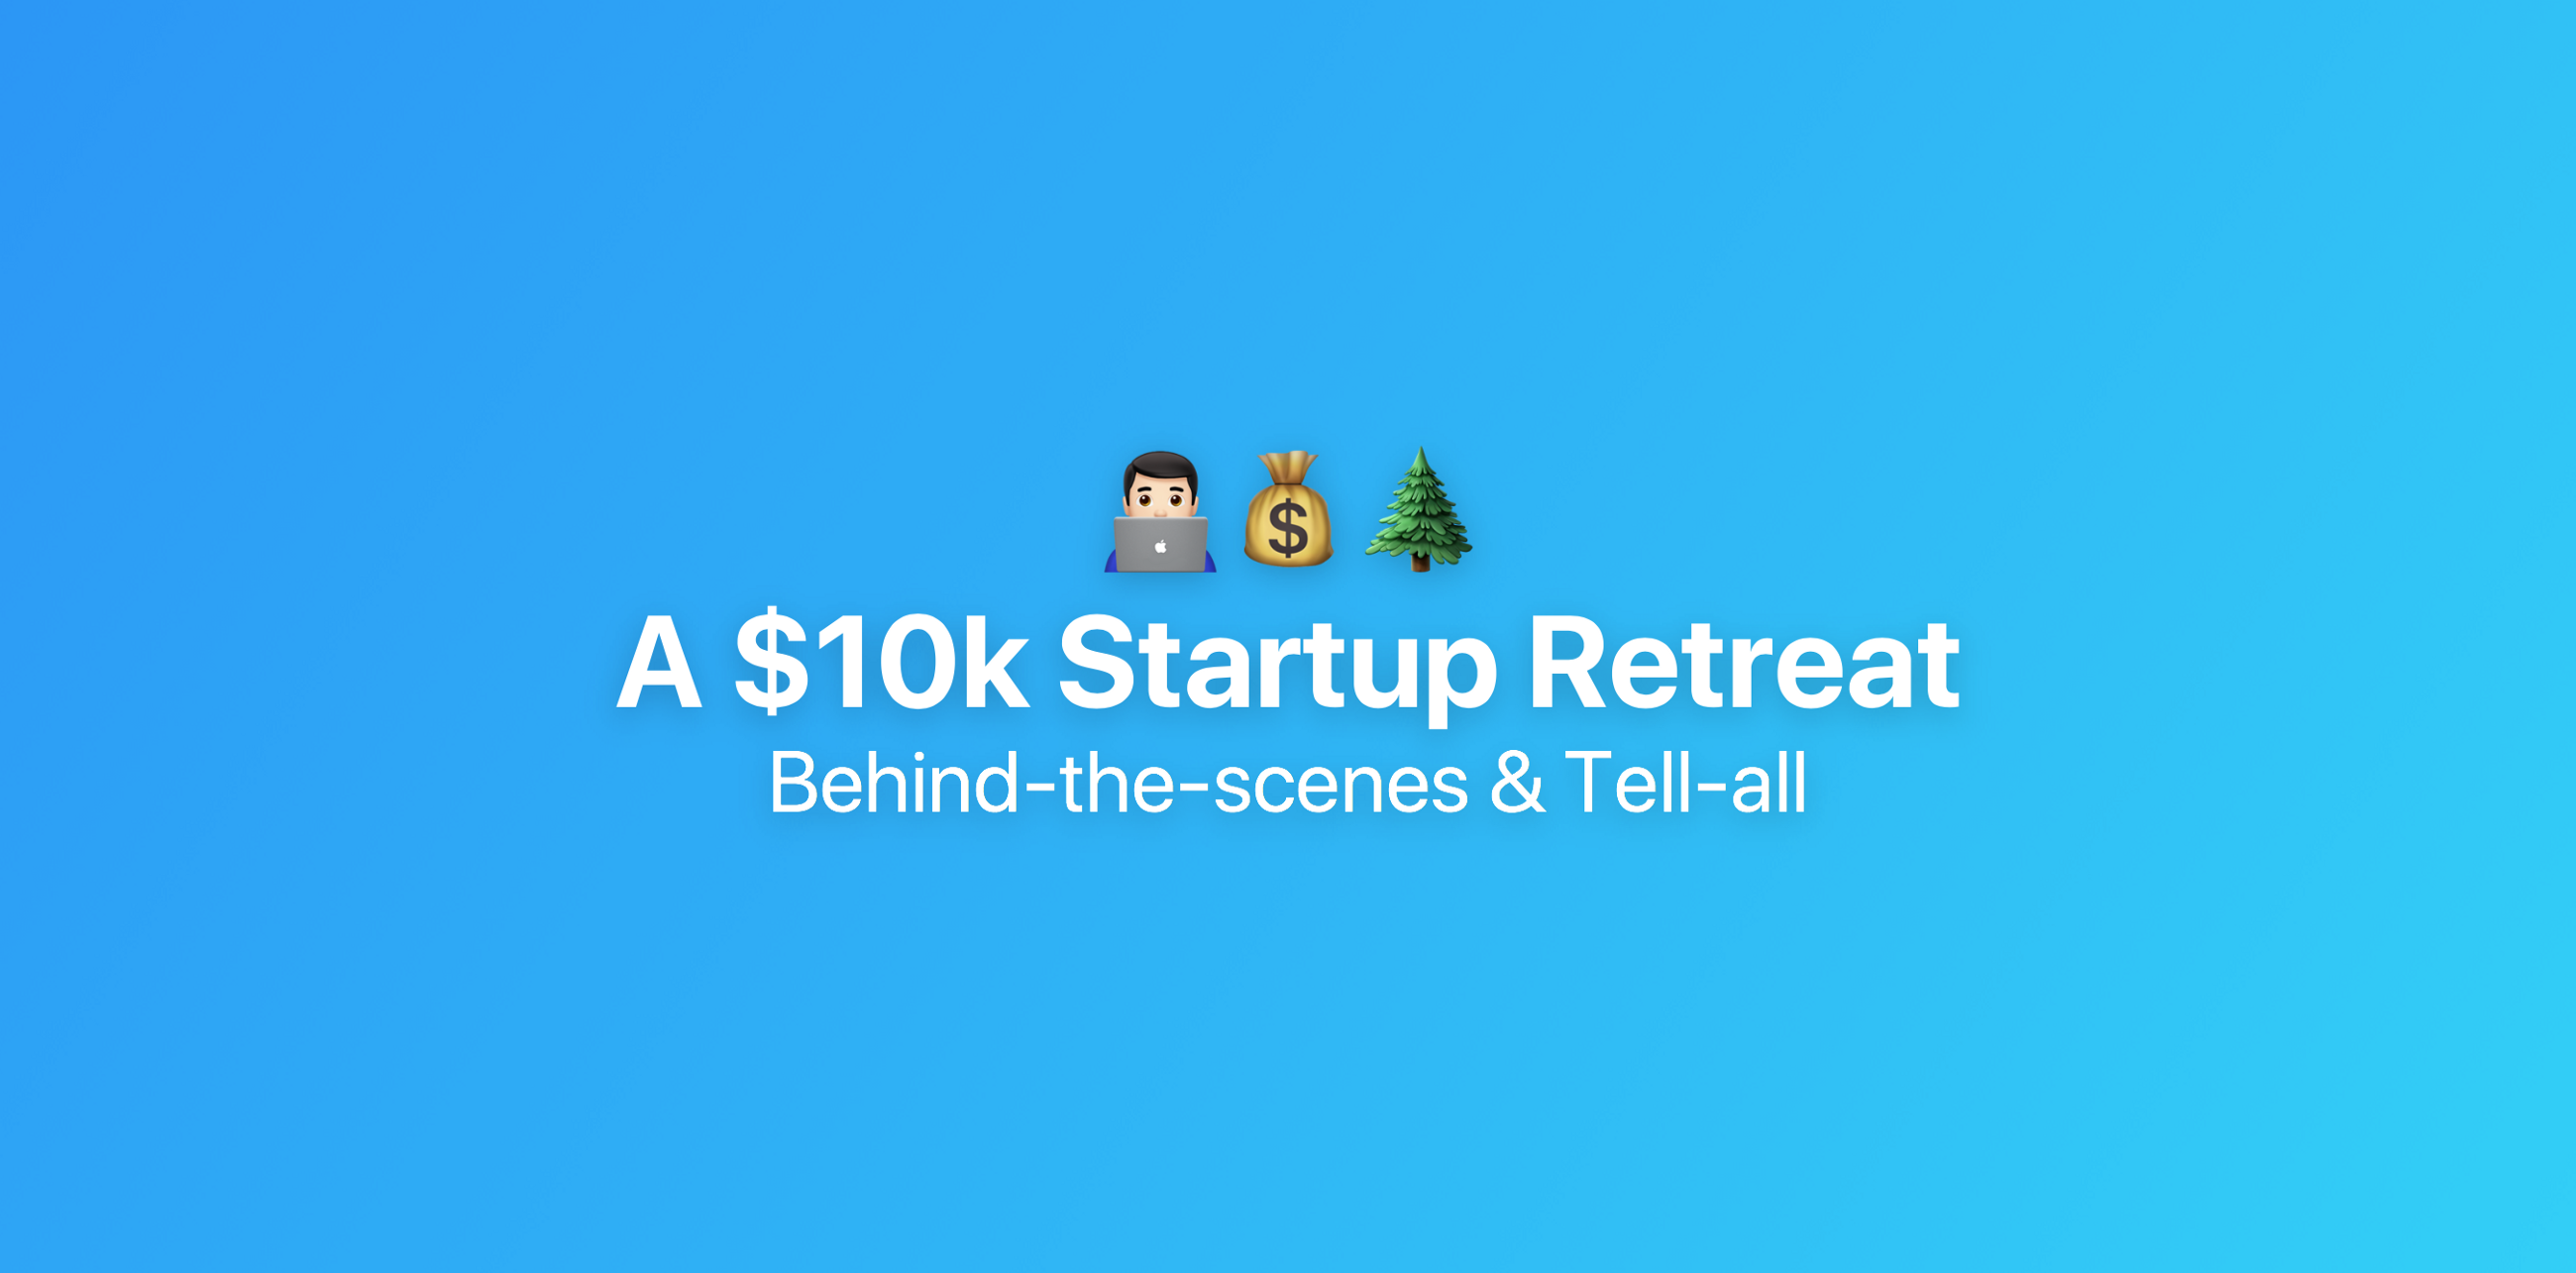 /why-and-how-our-startup-spends-10k-on-our-annual-retreat-d23aa28b6f1 feature image